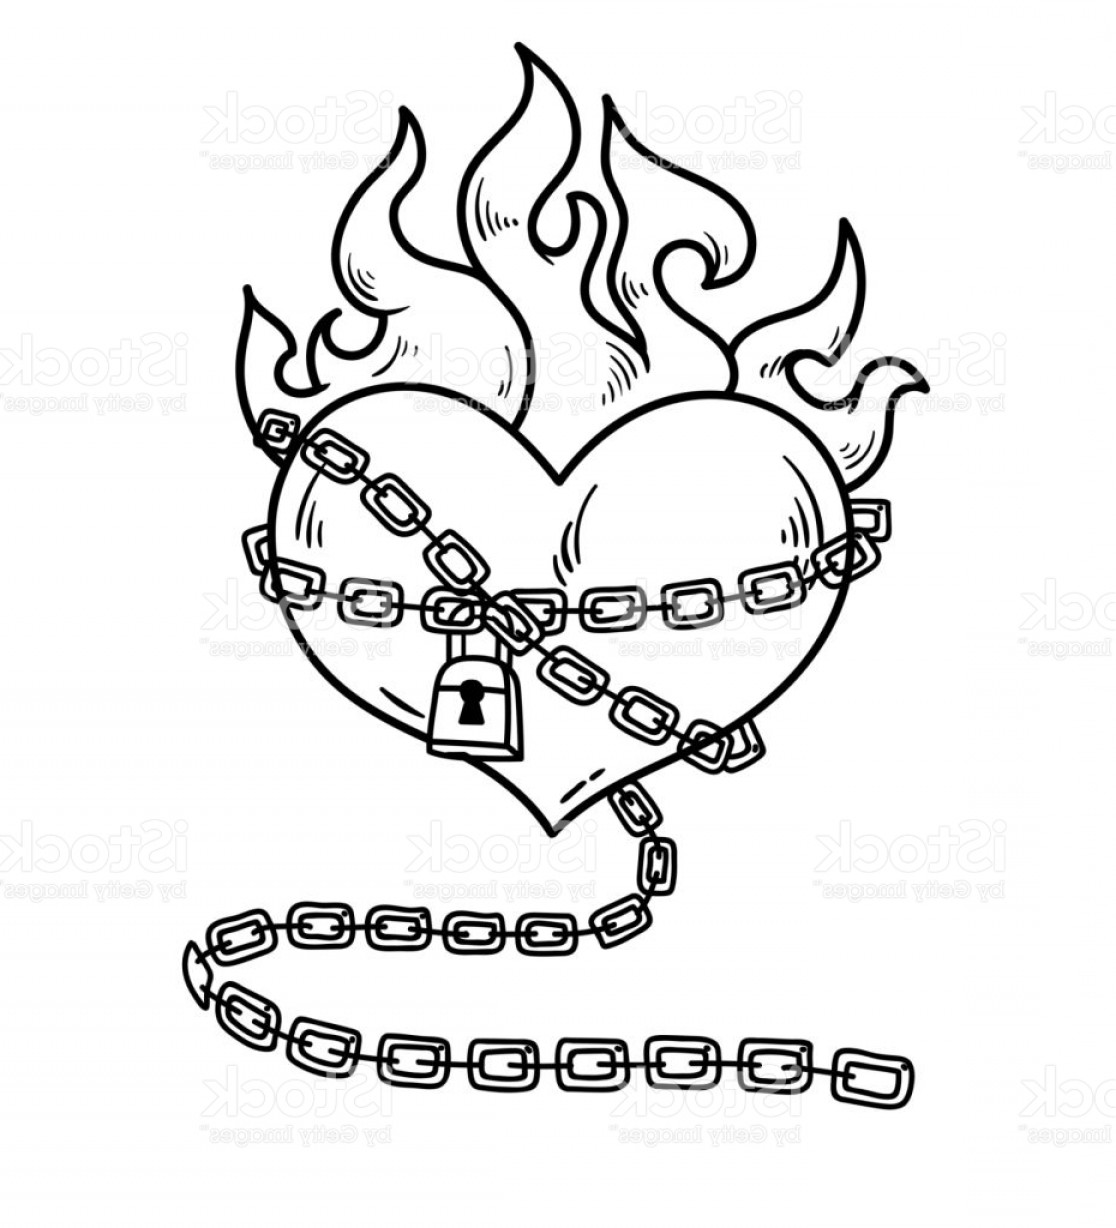 Vertical Tattoo Vector Graphics: Heart In Chains Of Love Flaming Heart Tattoo Gm